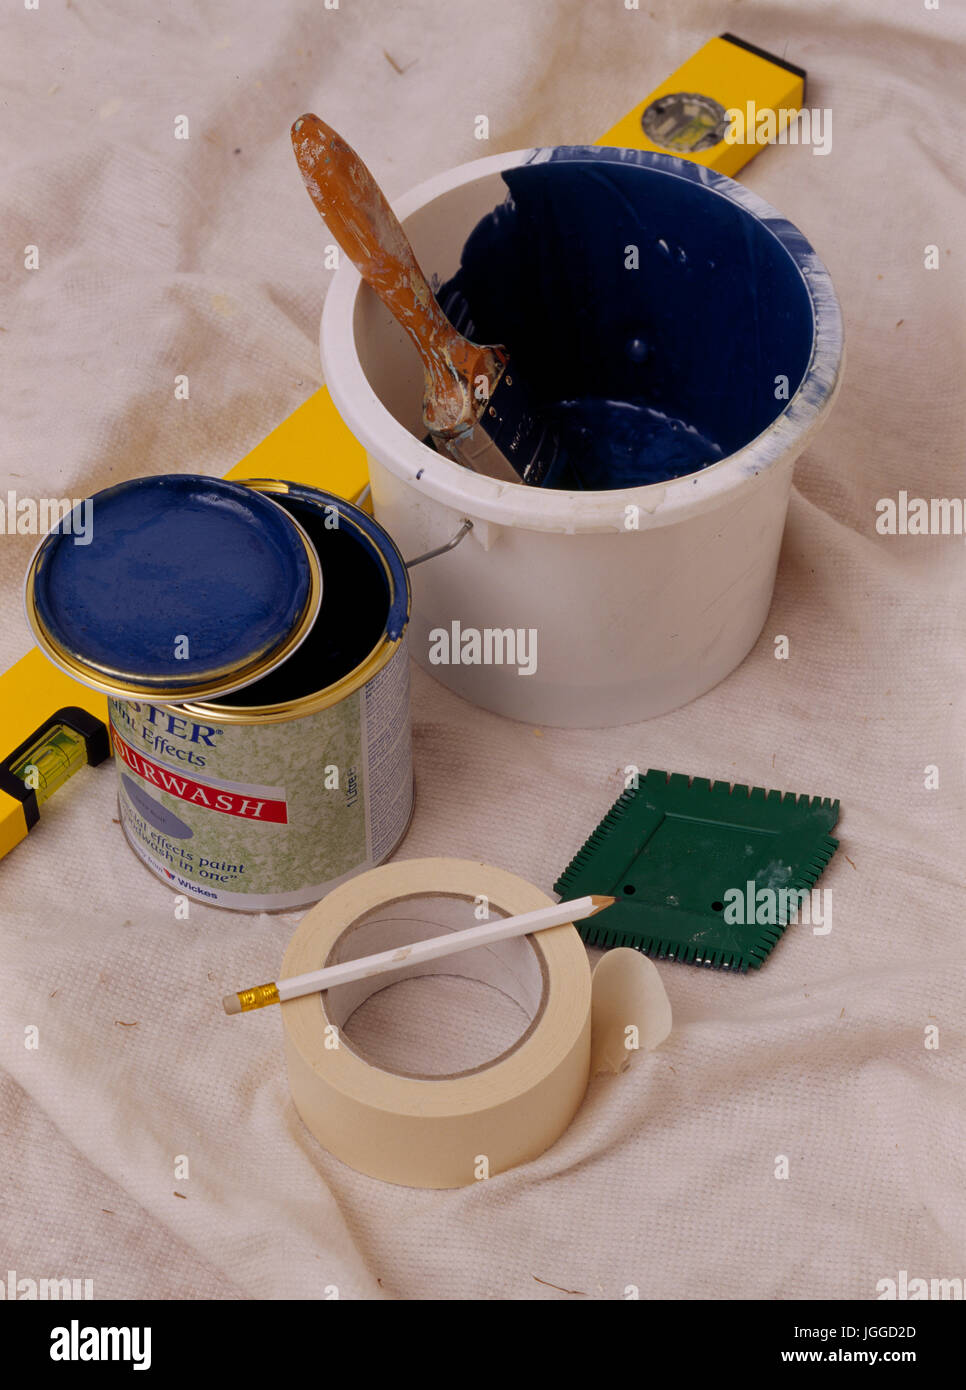 Tins of paint for painting renovated chest. Step x step shots of craft and diy projects - Stock Image